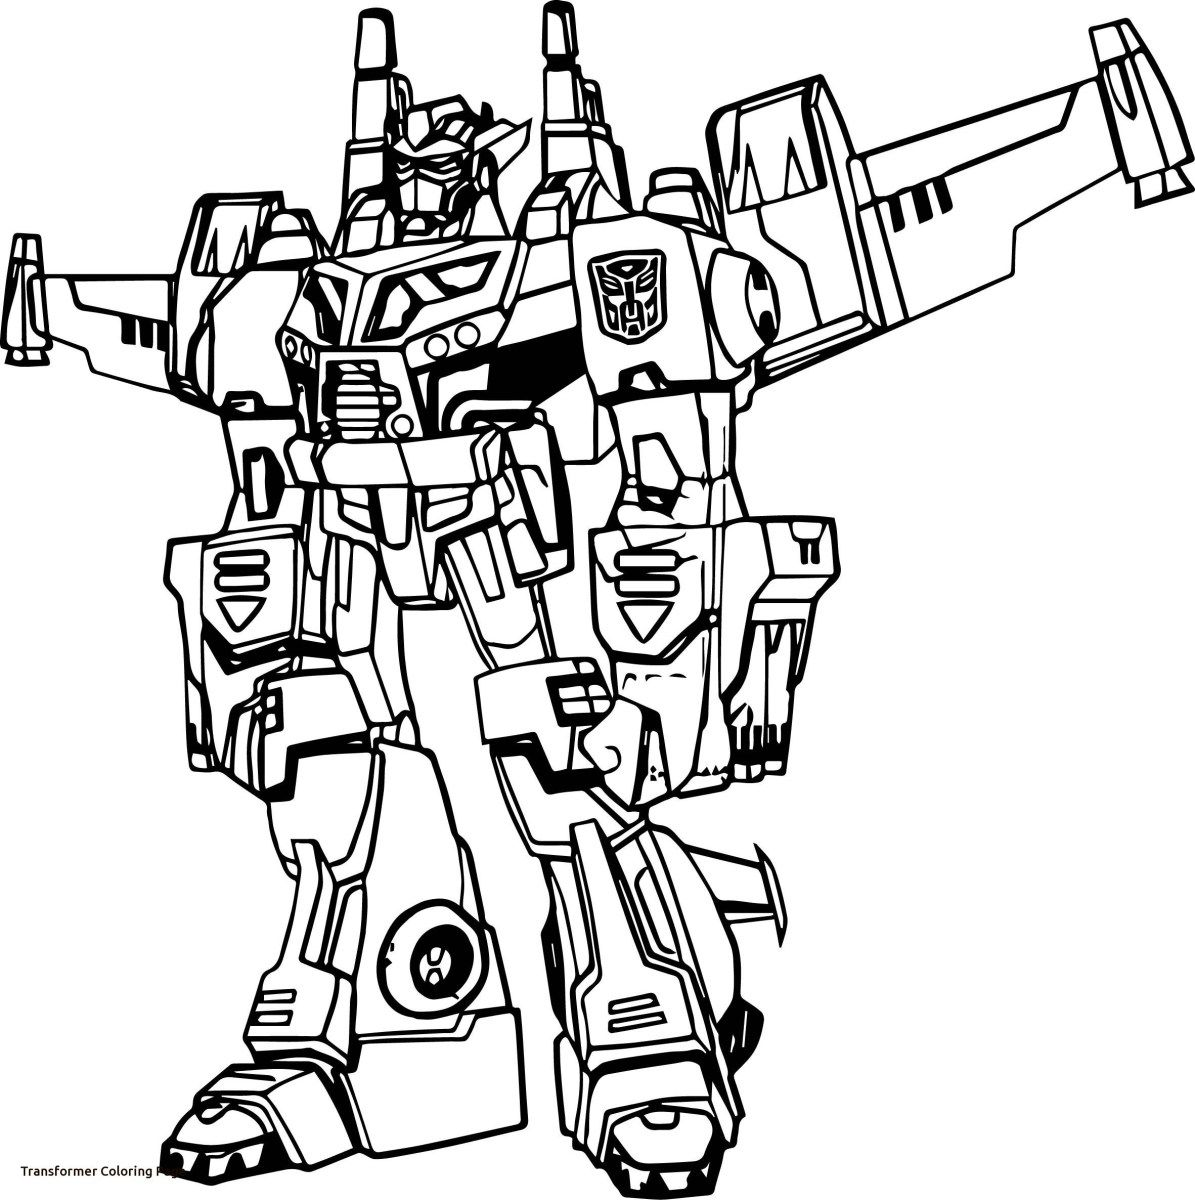 Transformer Coloring Pages A Ordable Transformers Coloring Pages